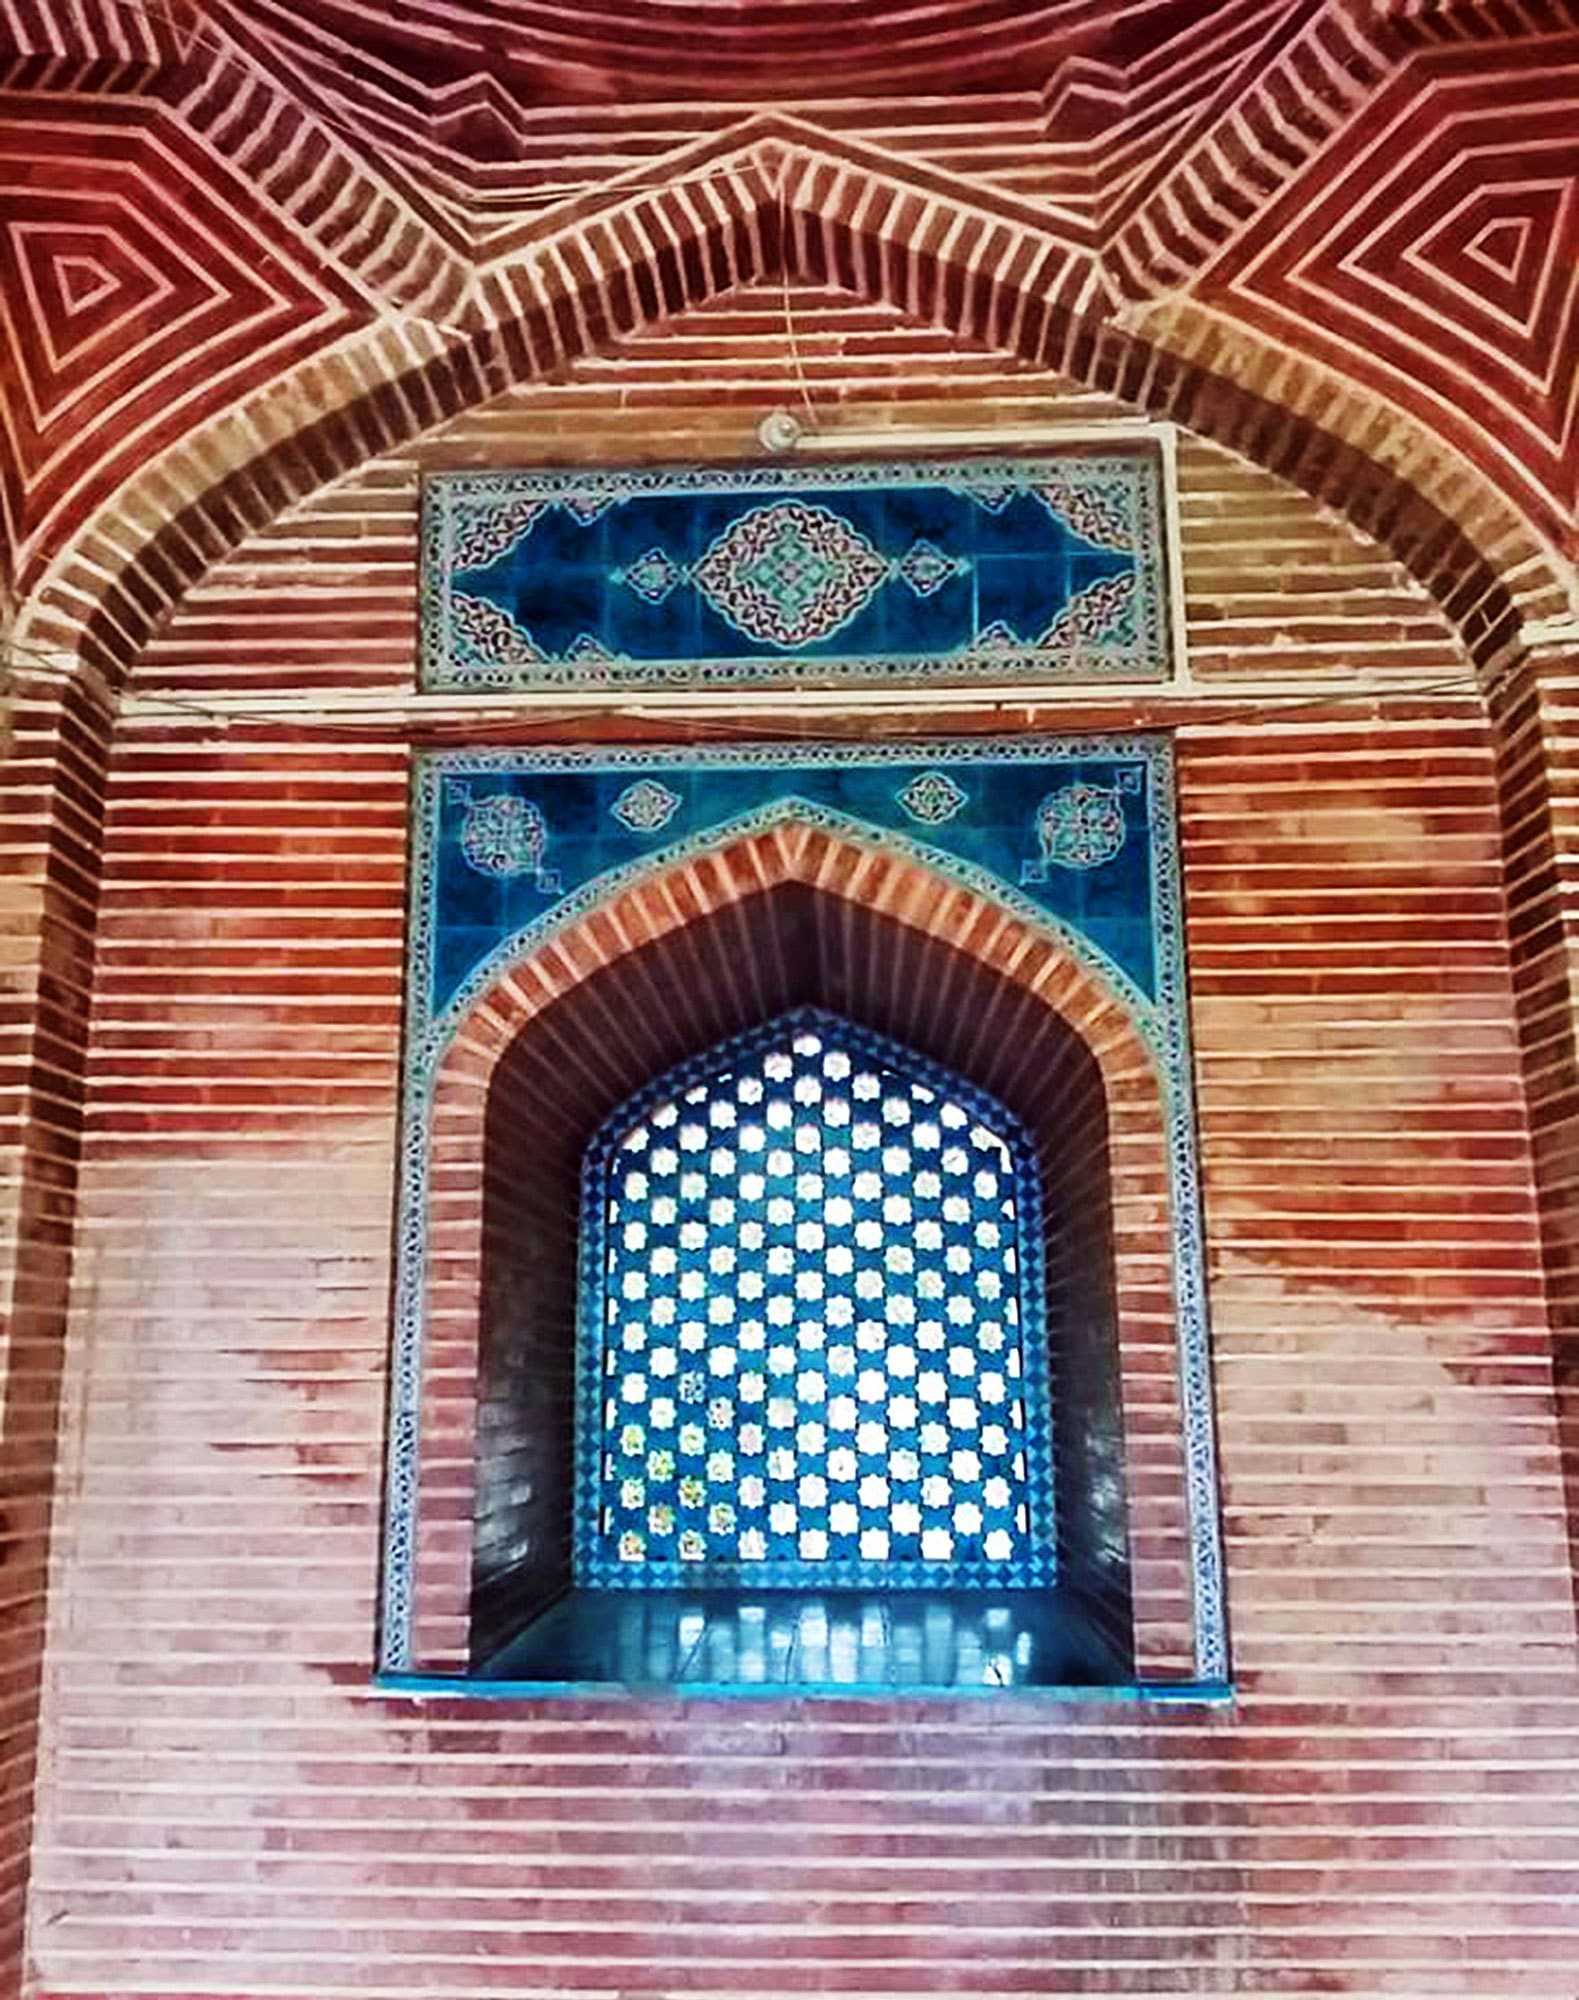 Tiles and brickwork: A brilliant combination of blue and red.